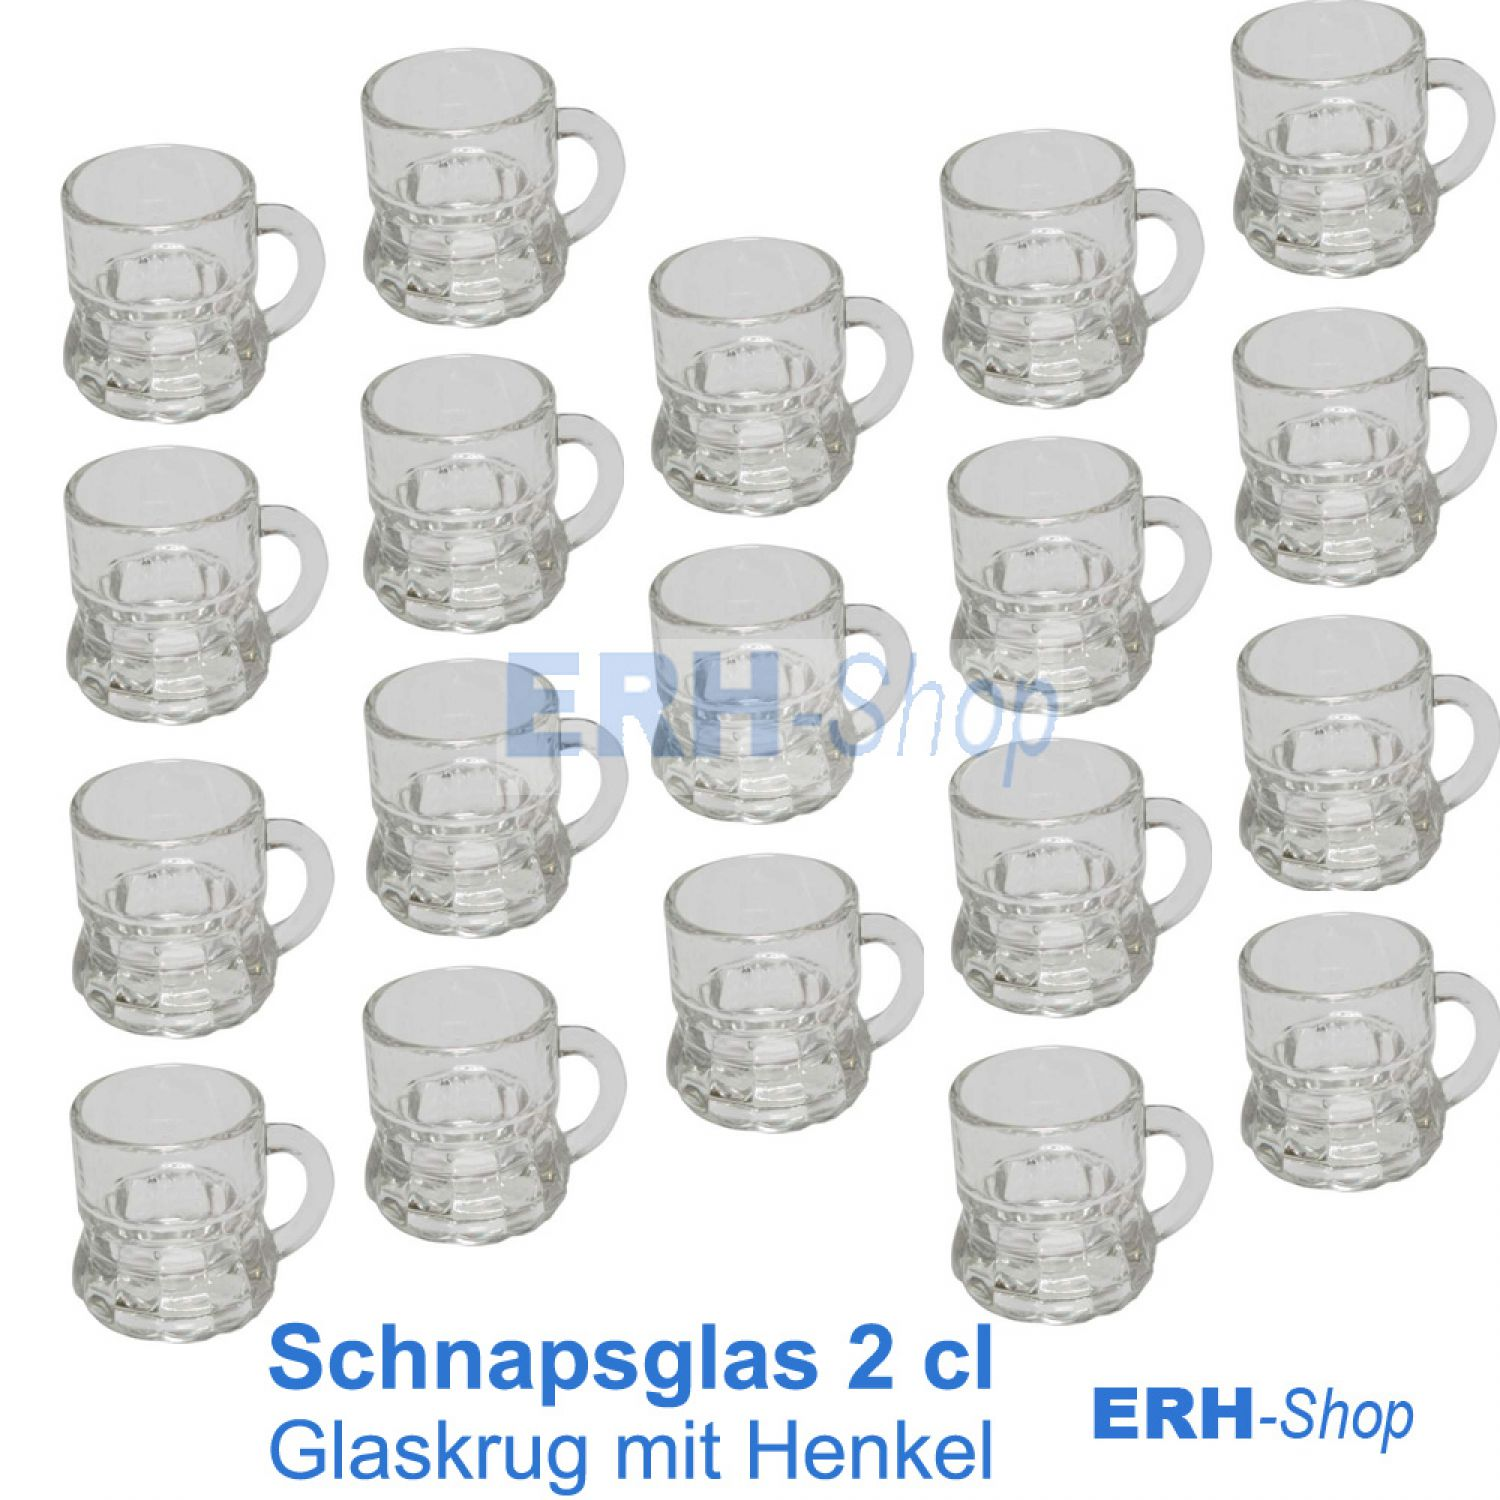 schnapsgl ser 2 cl glas mit henkel 24 st ck karneval geburtstag hochzeit party ebay. Black Bedroom Furniture Sets. Home Design Ideas